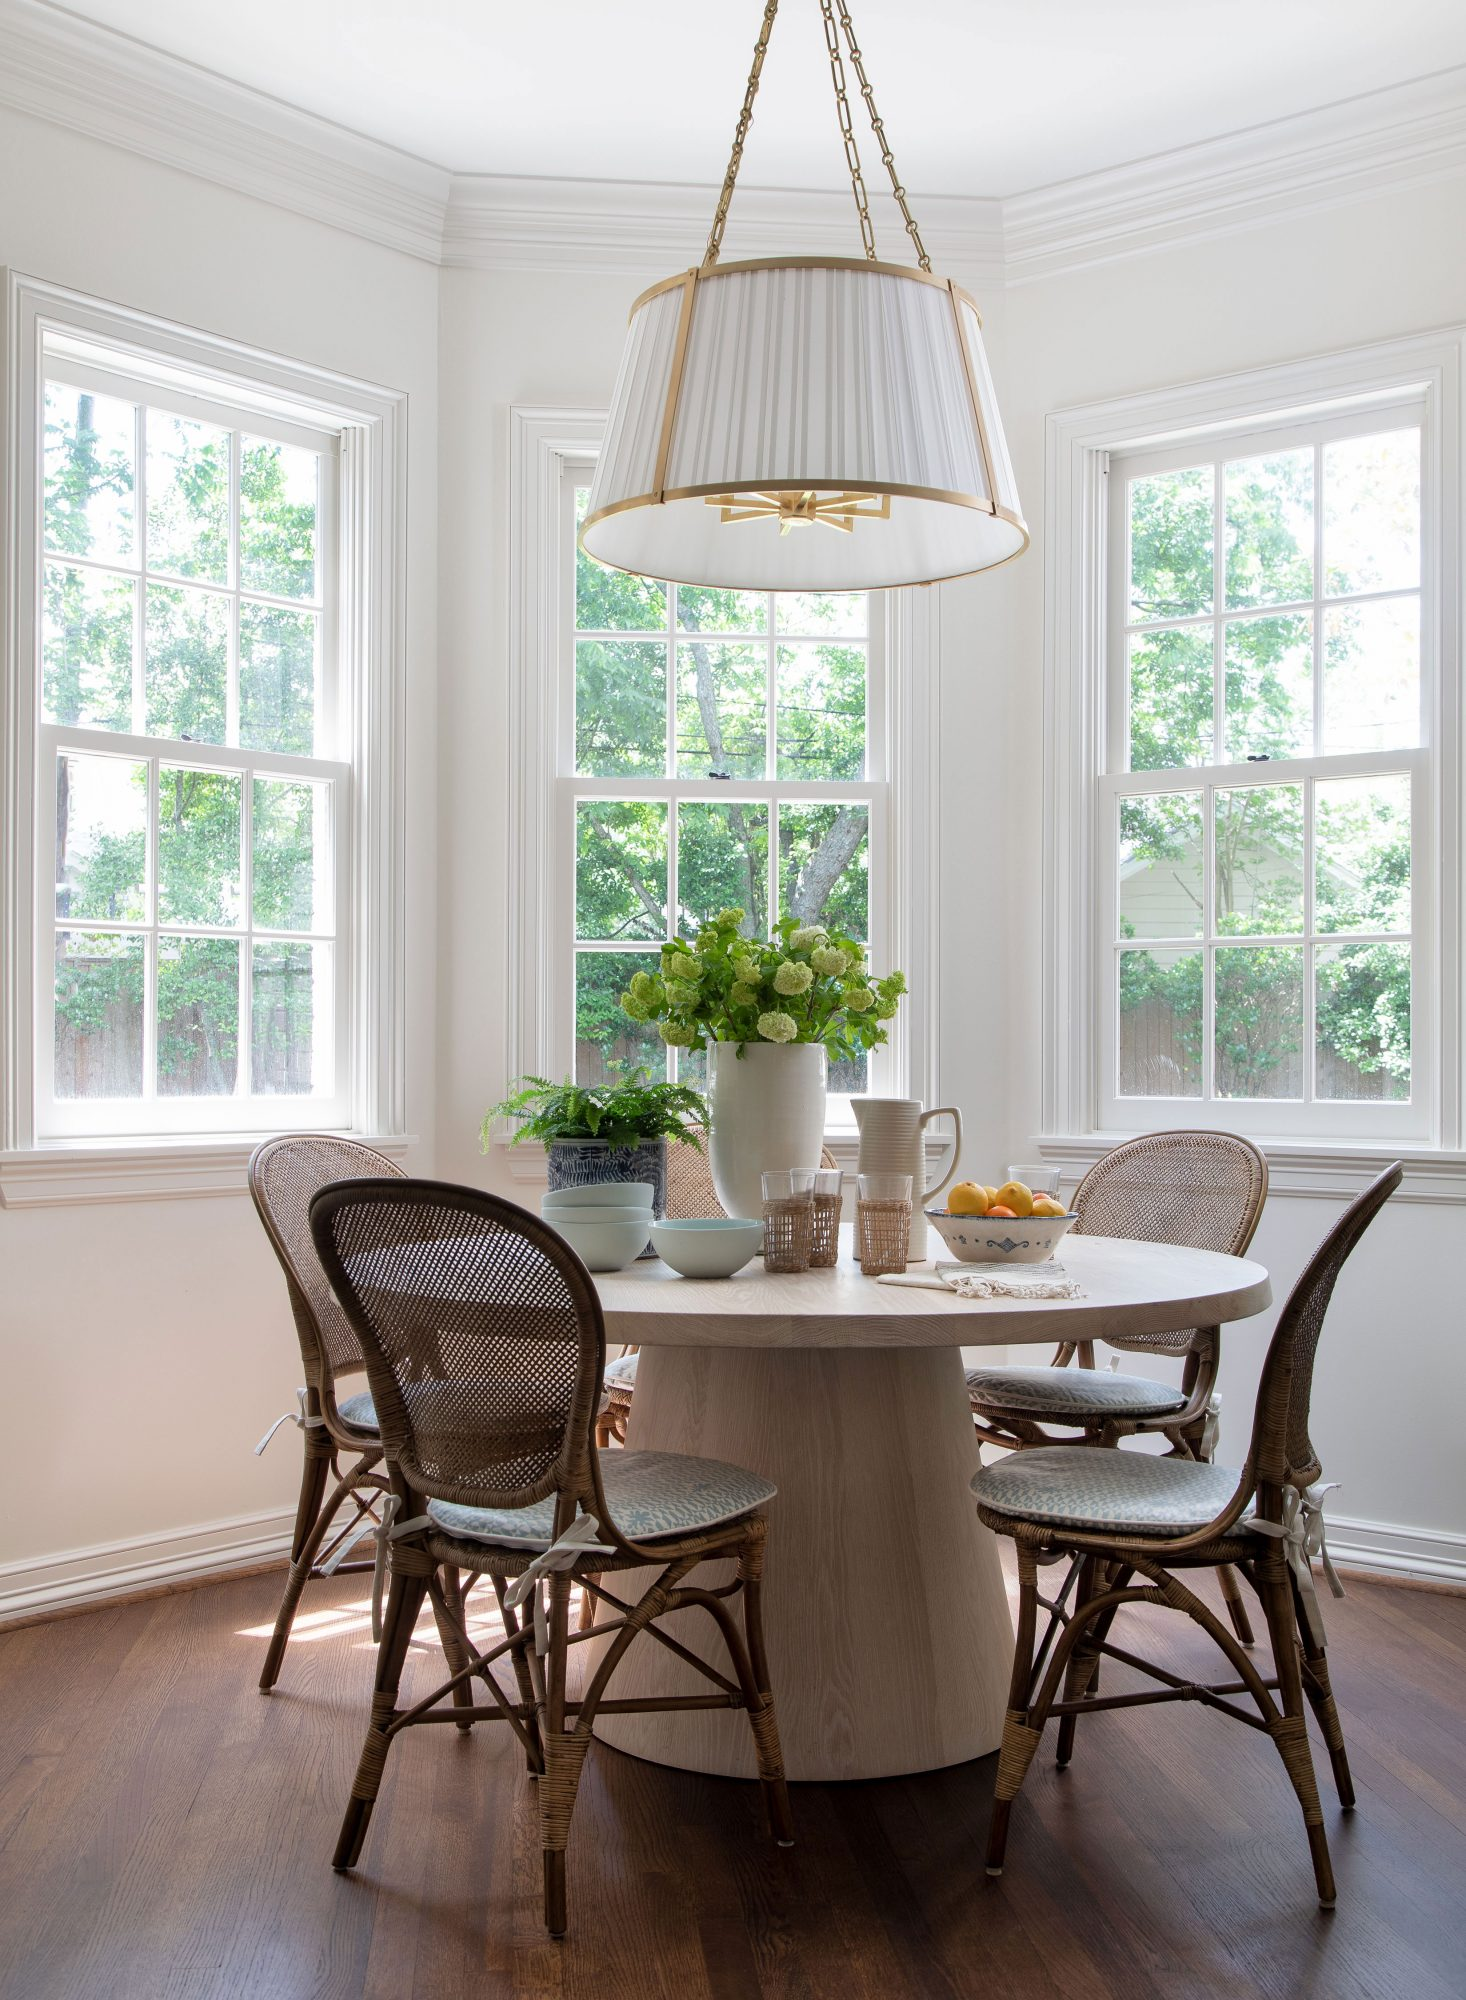 Breakfast nook with drum light fixture and round table